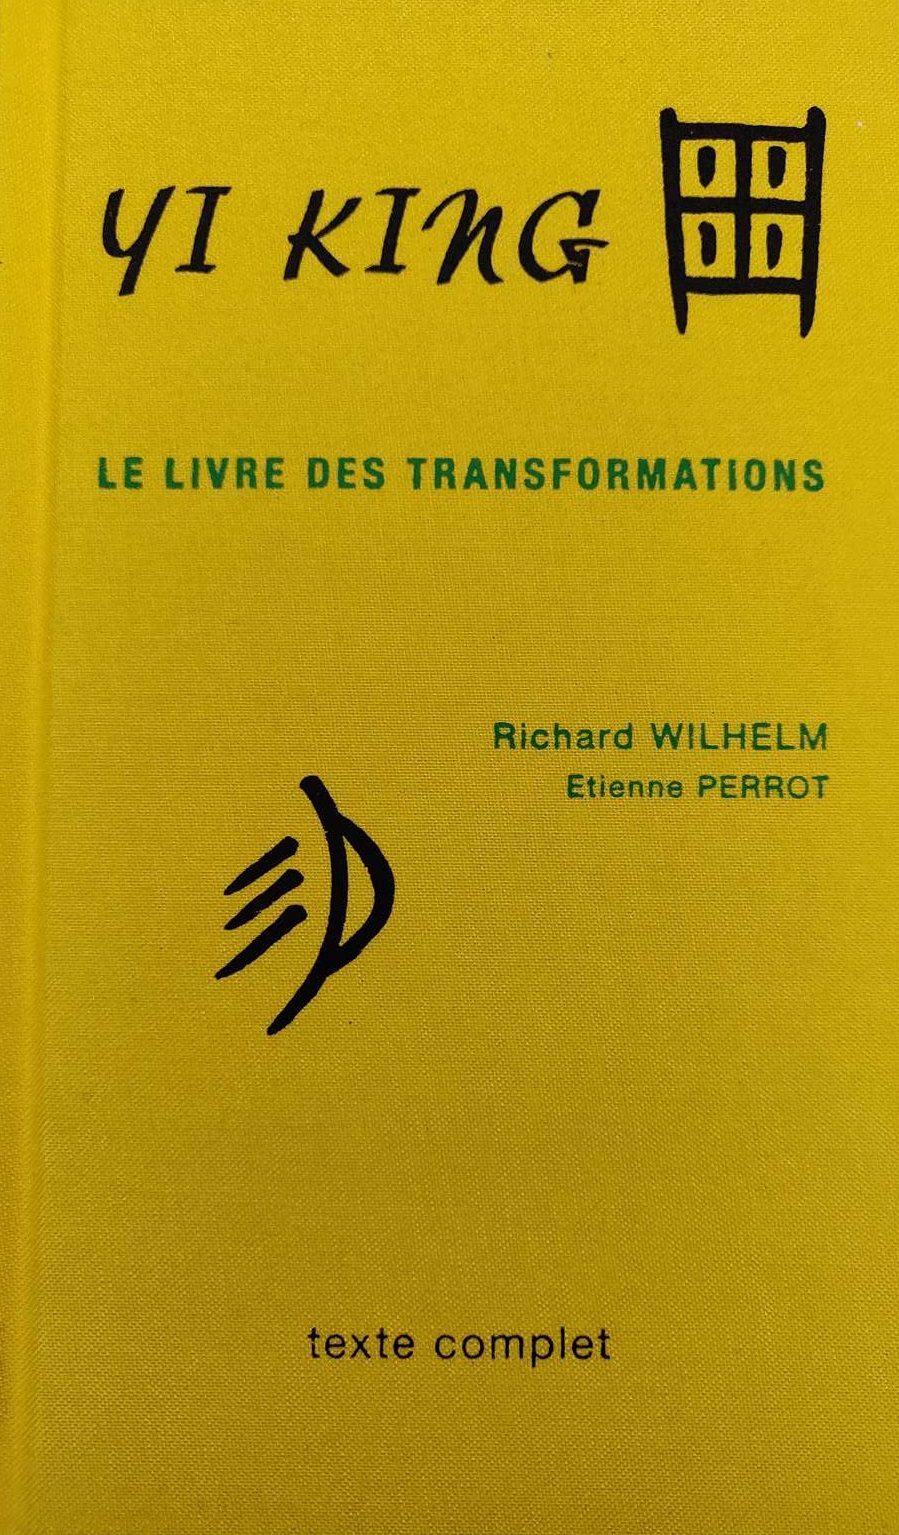 Le livre des transformations, Yi Jing - Feng Shui Tradition